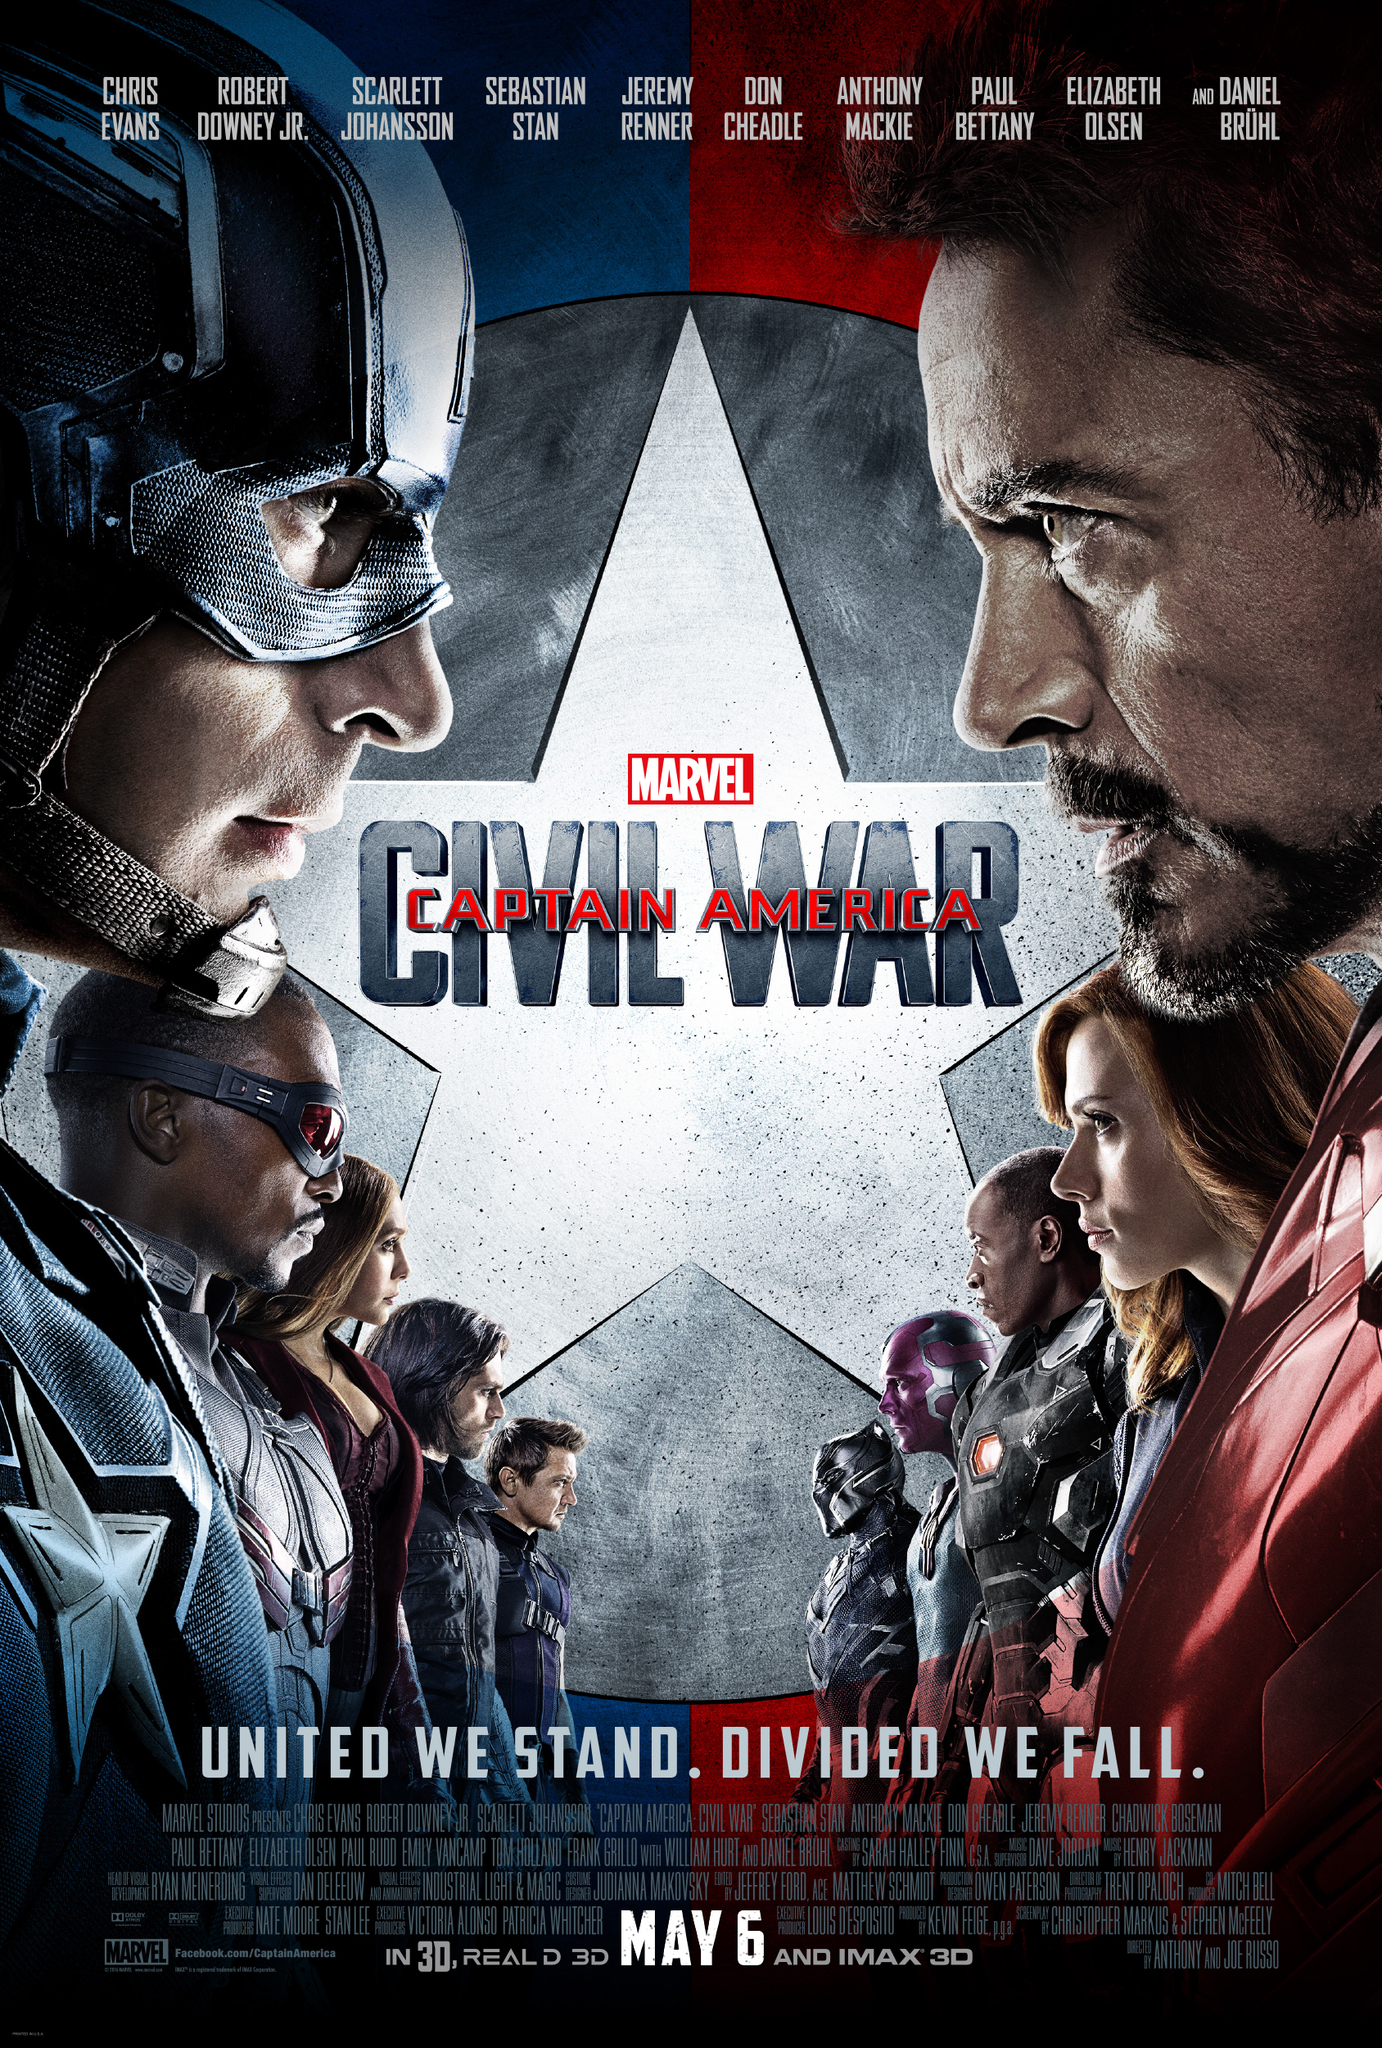 Captain America: Civil War (2016) BluRay 480p, 720p, 1080p & 4K-2160p